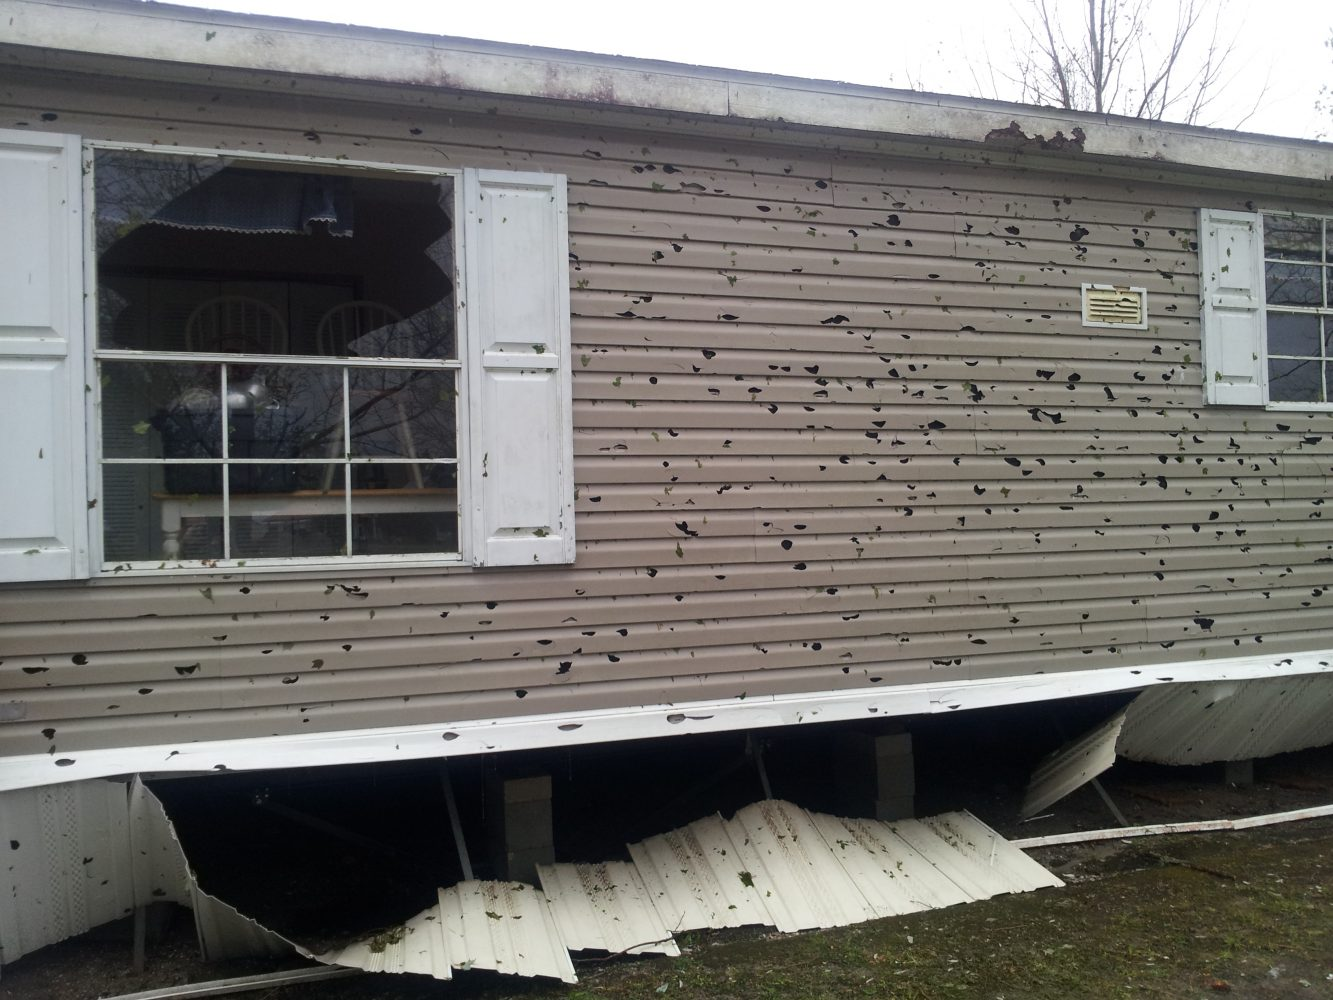 A mobile home near Lawtey was damaged by hail and left with holes and broken windows. Courtesy: Bradford County Emergency Management